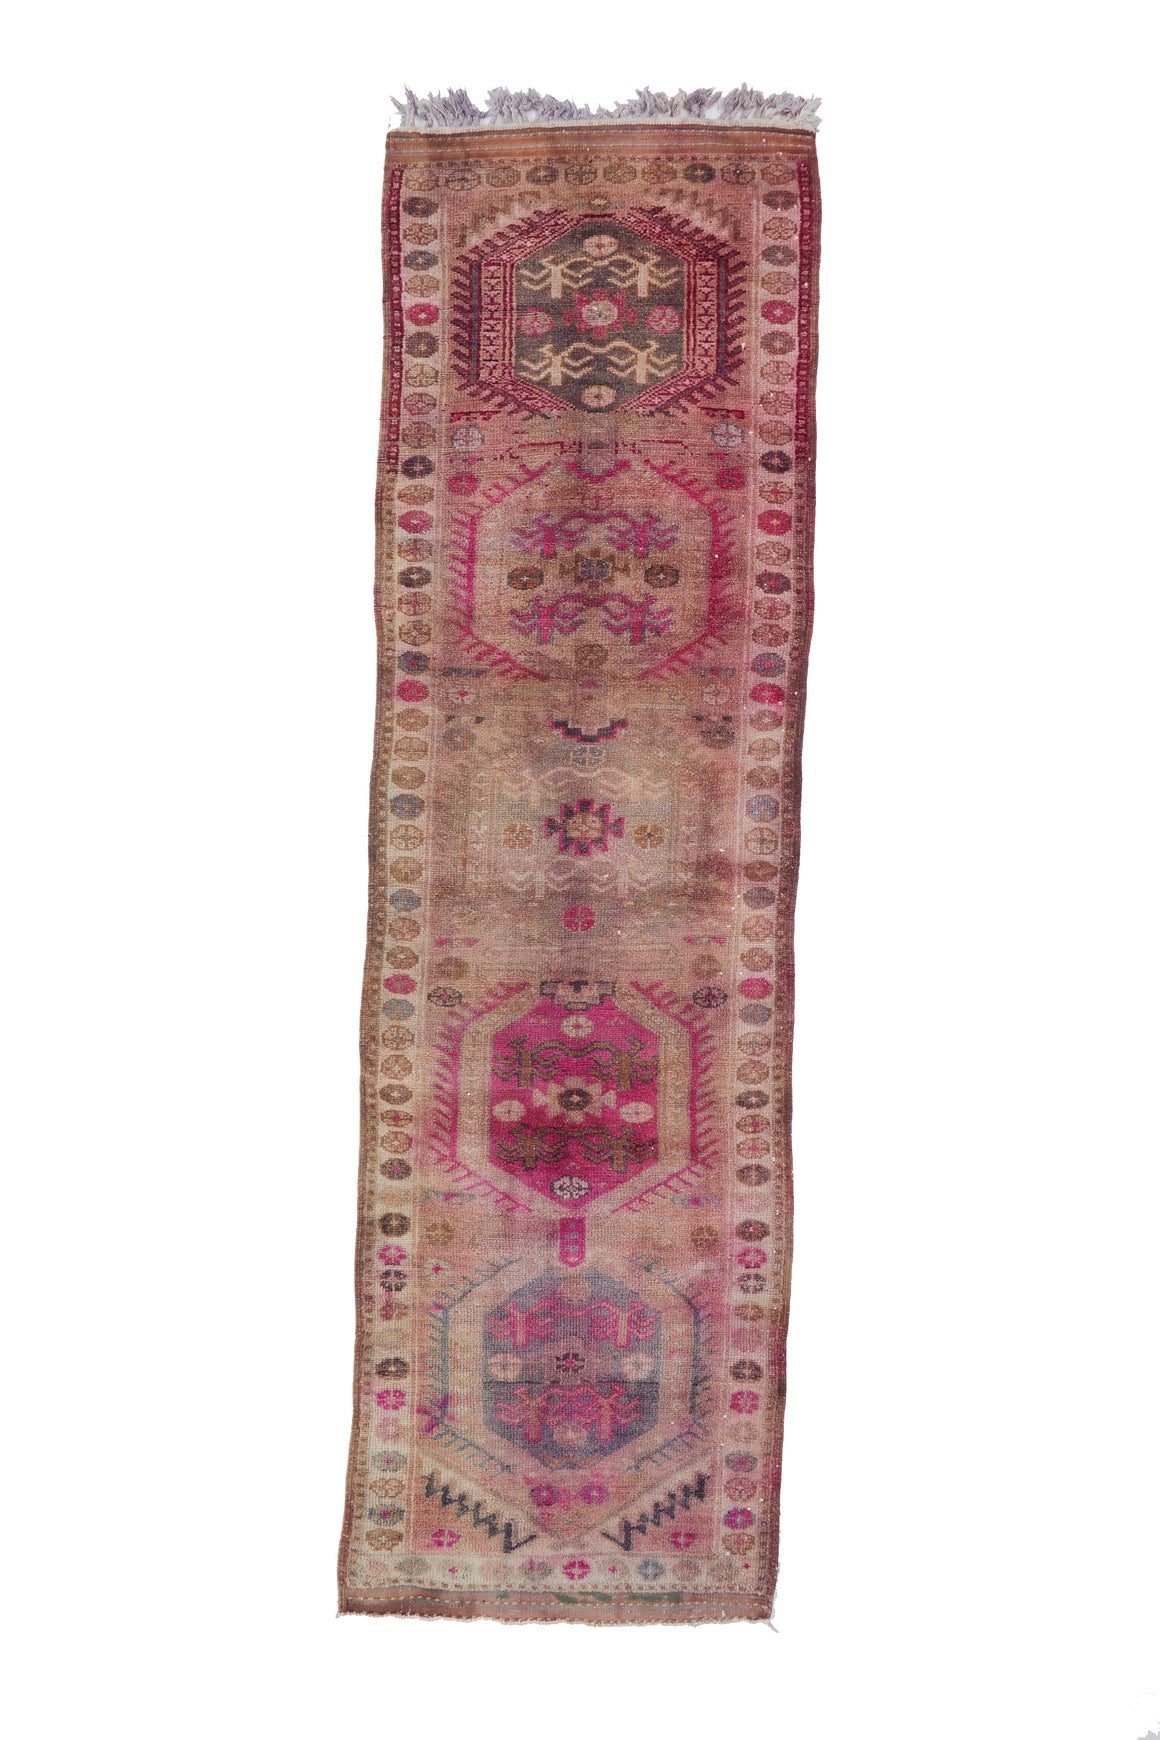 "'Hyacinth' Vintage Turkish Runner - 3'2"" x 11'3"" - Canary Lane - Curated Textiles"